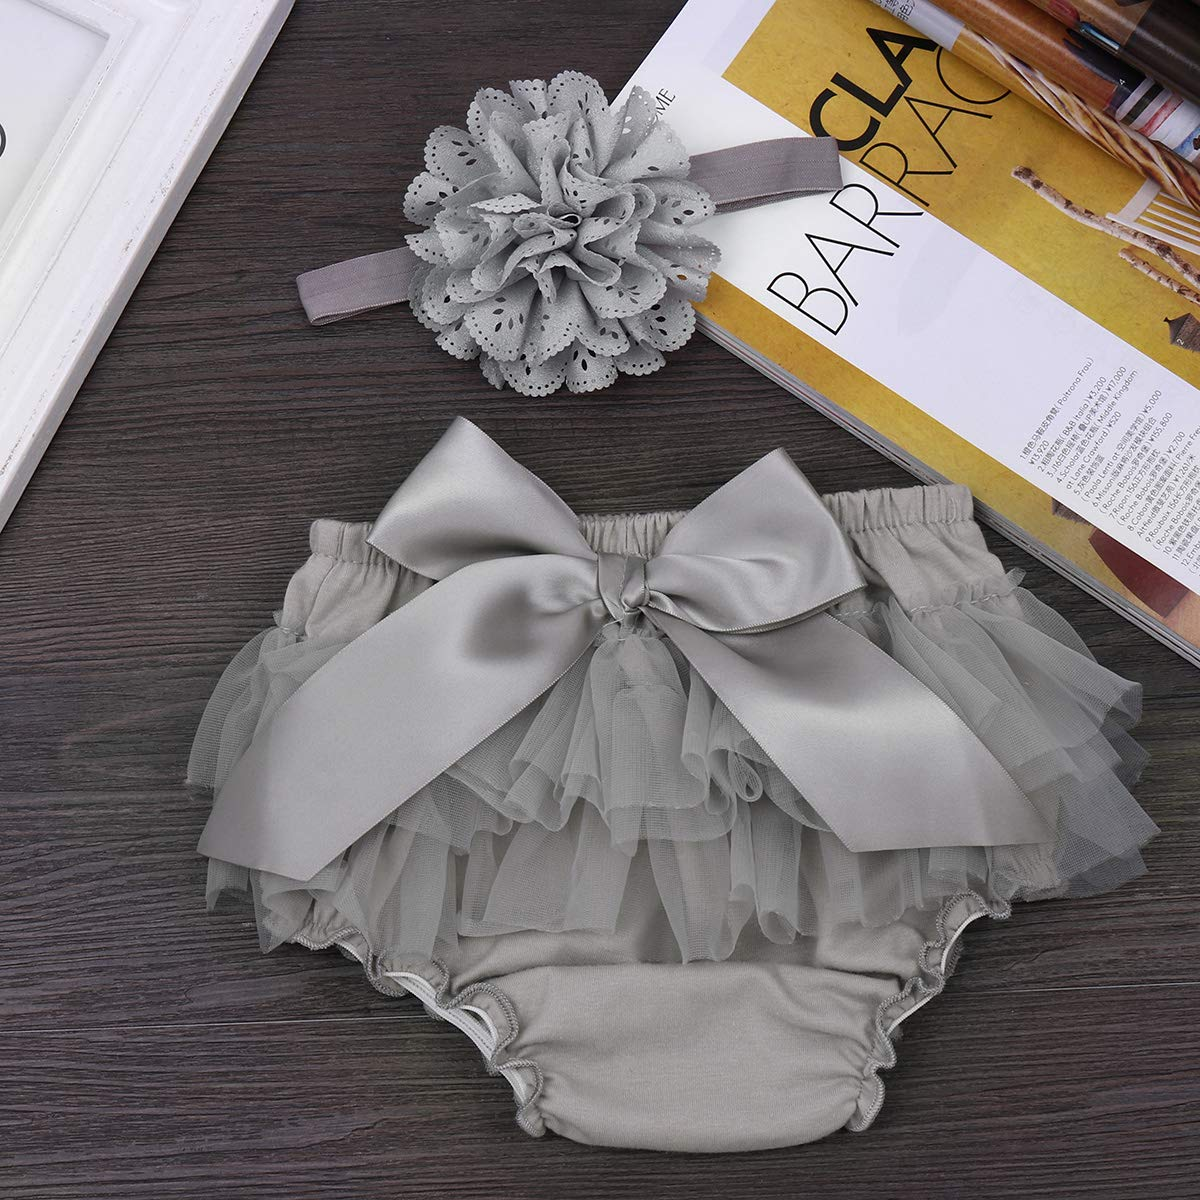 ACSUSS Newborn Baby Girls Photo Shoot Props Ruffled Cake Smash Bloomer with Headband Outfits